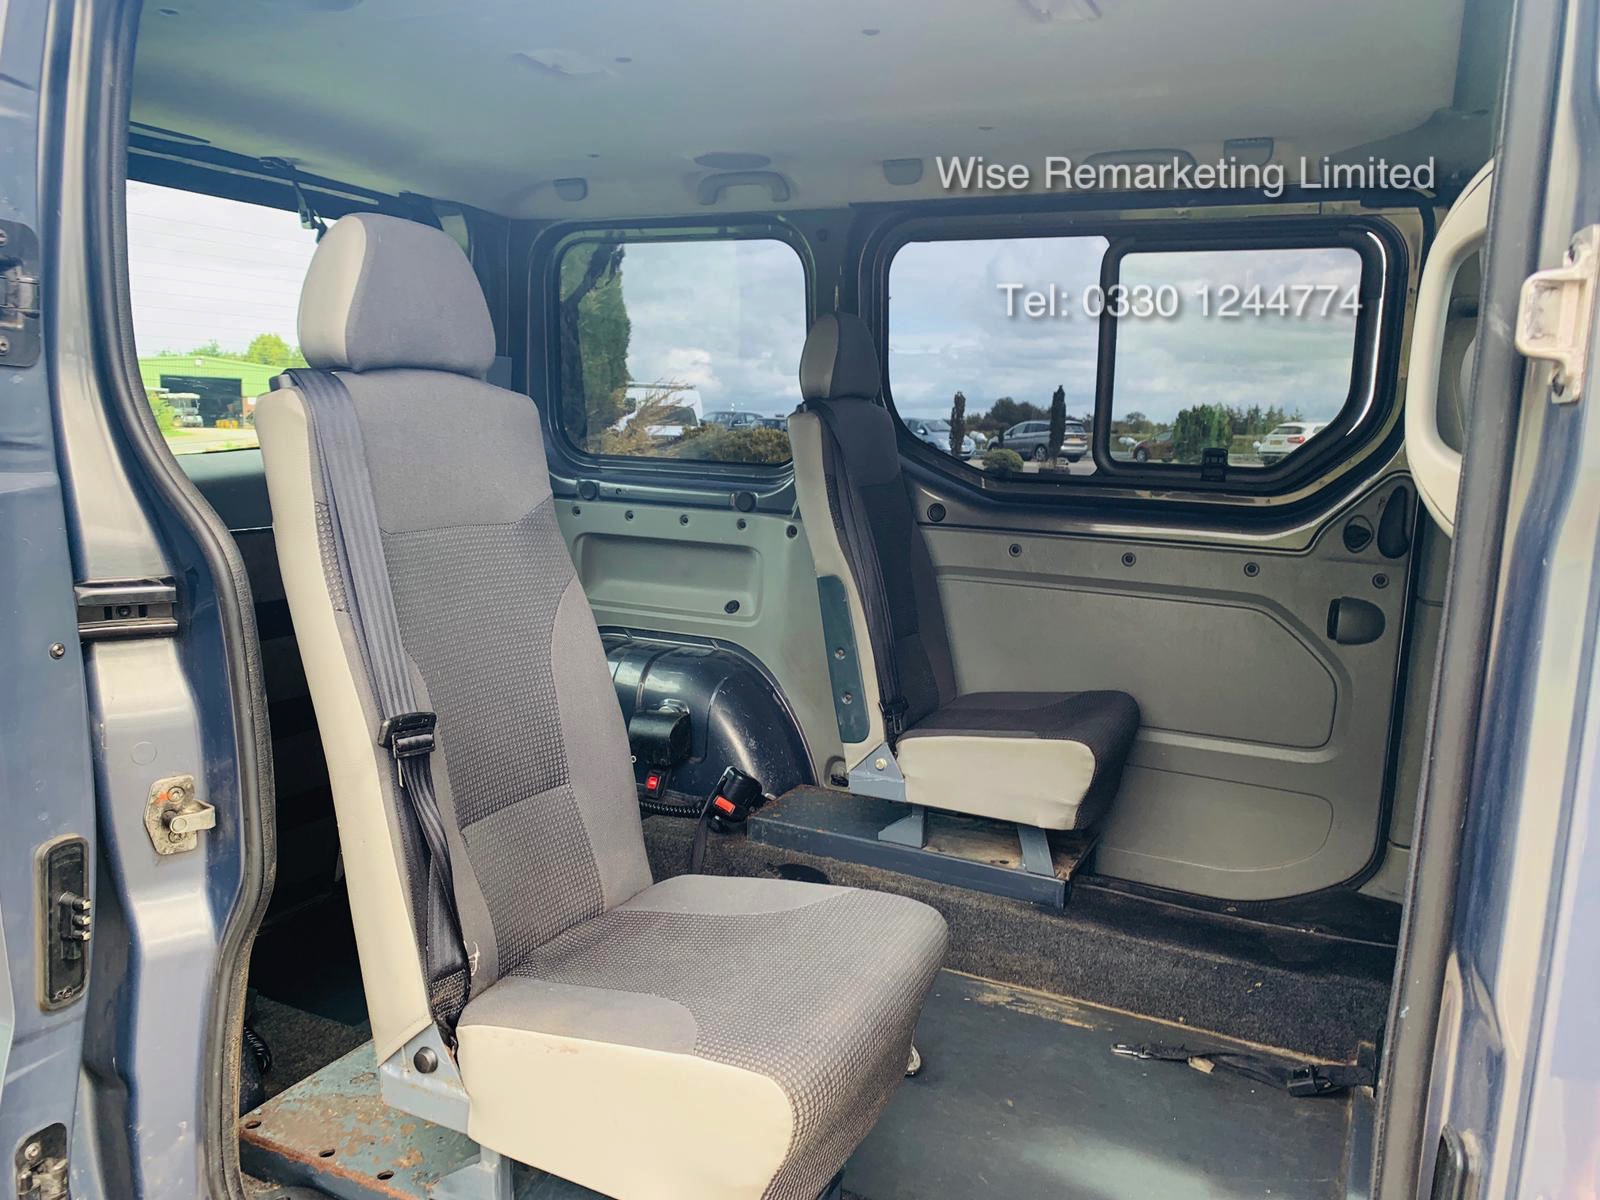 Vauxhall Vivaro 2.0 CDTI 2900 Minibus - 2014 Model - Wheel Chair Access -1 Owner From New -History - Image 10 of 21